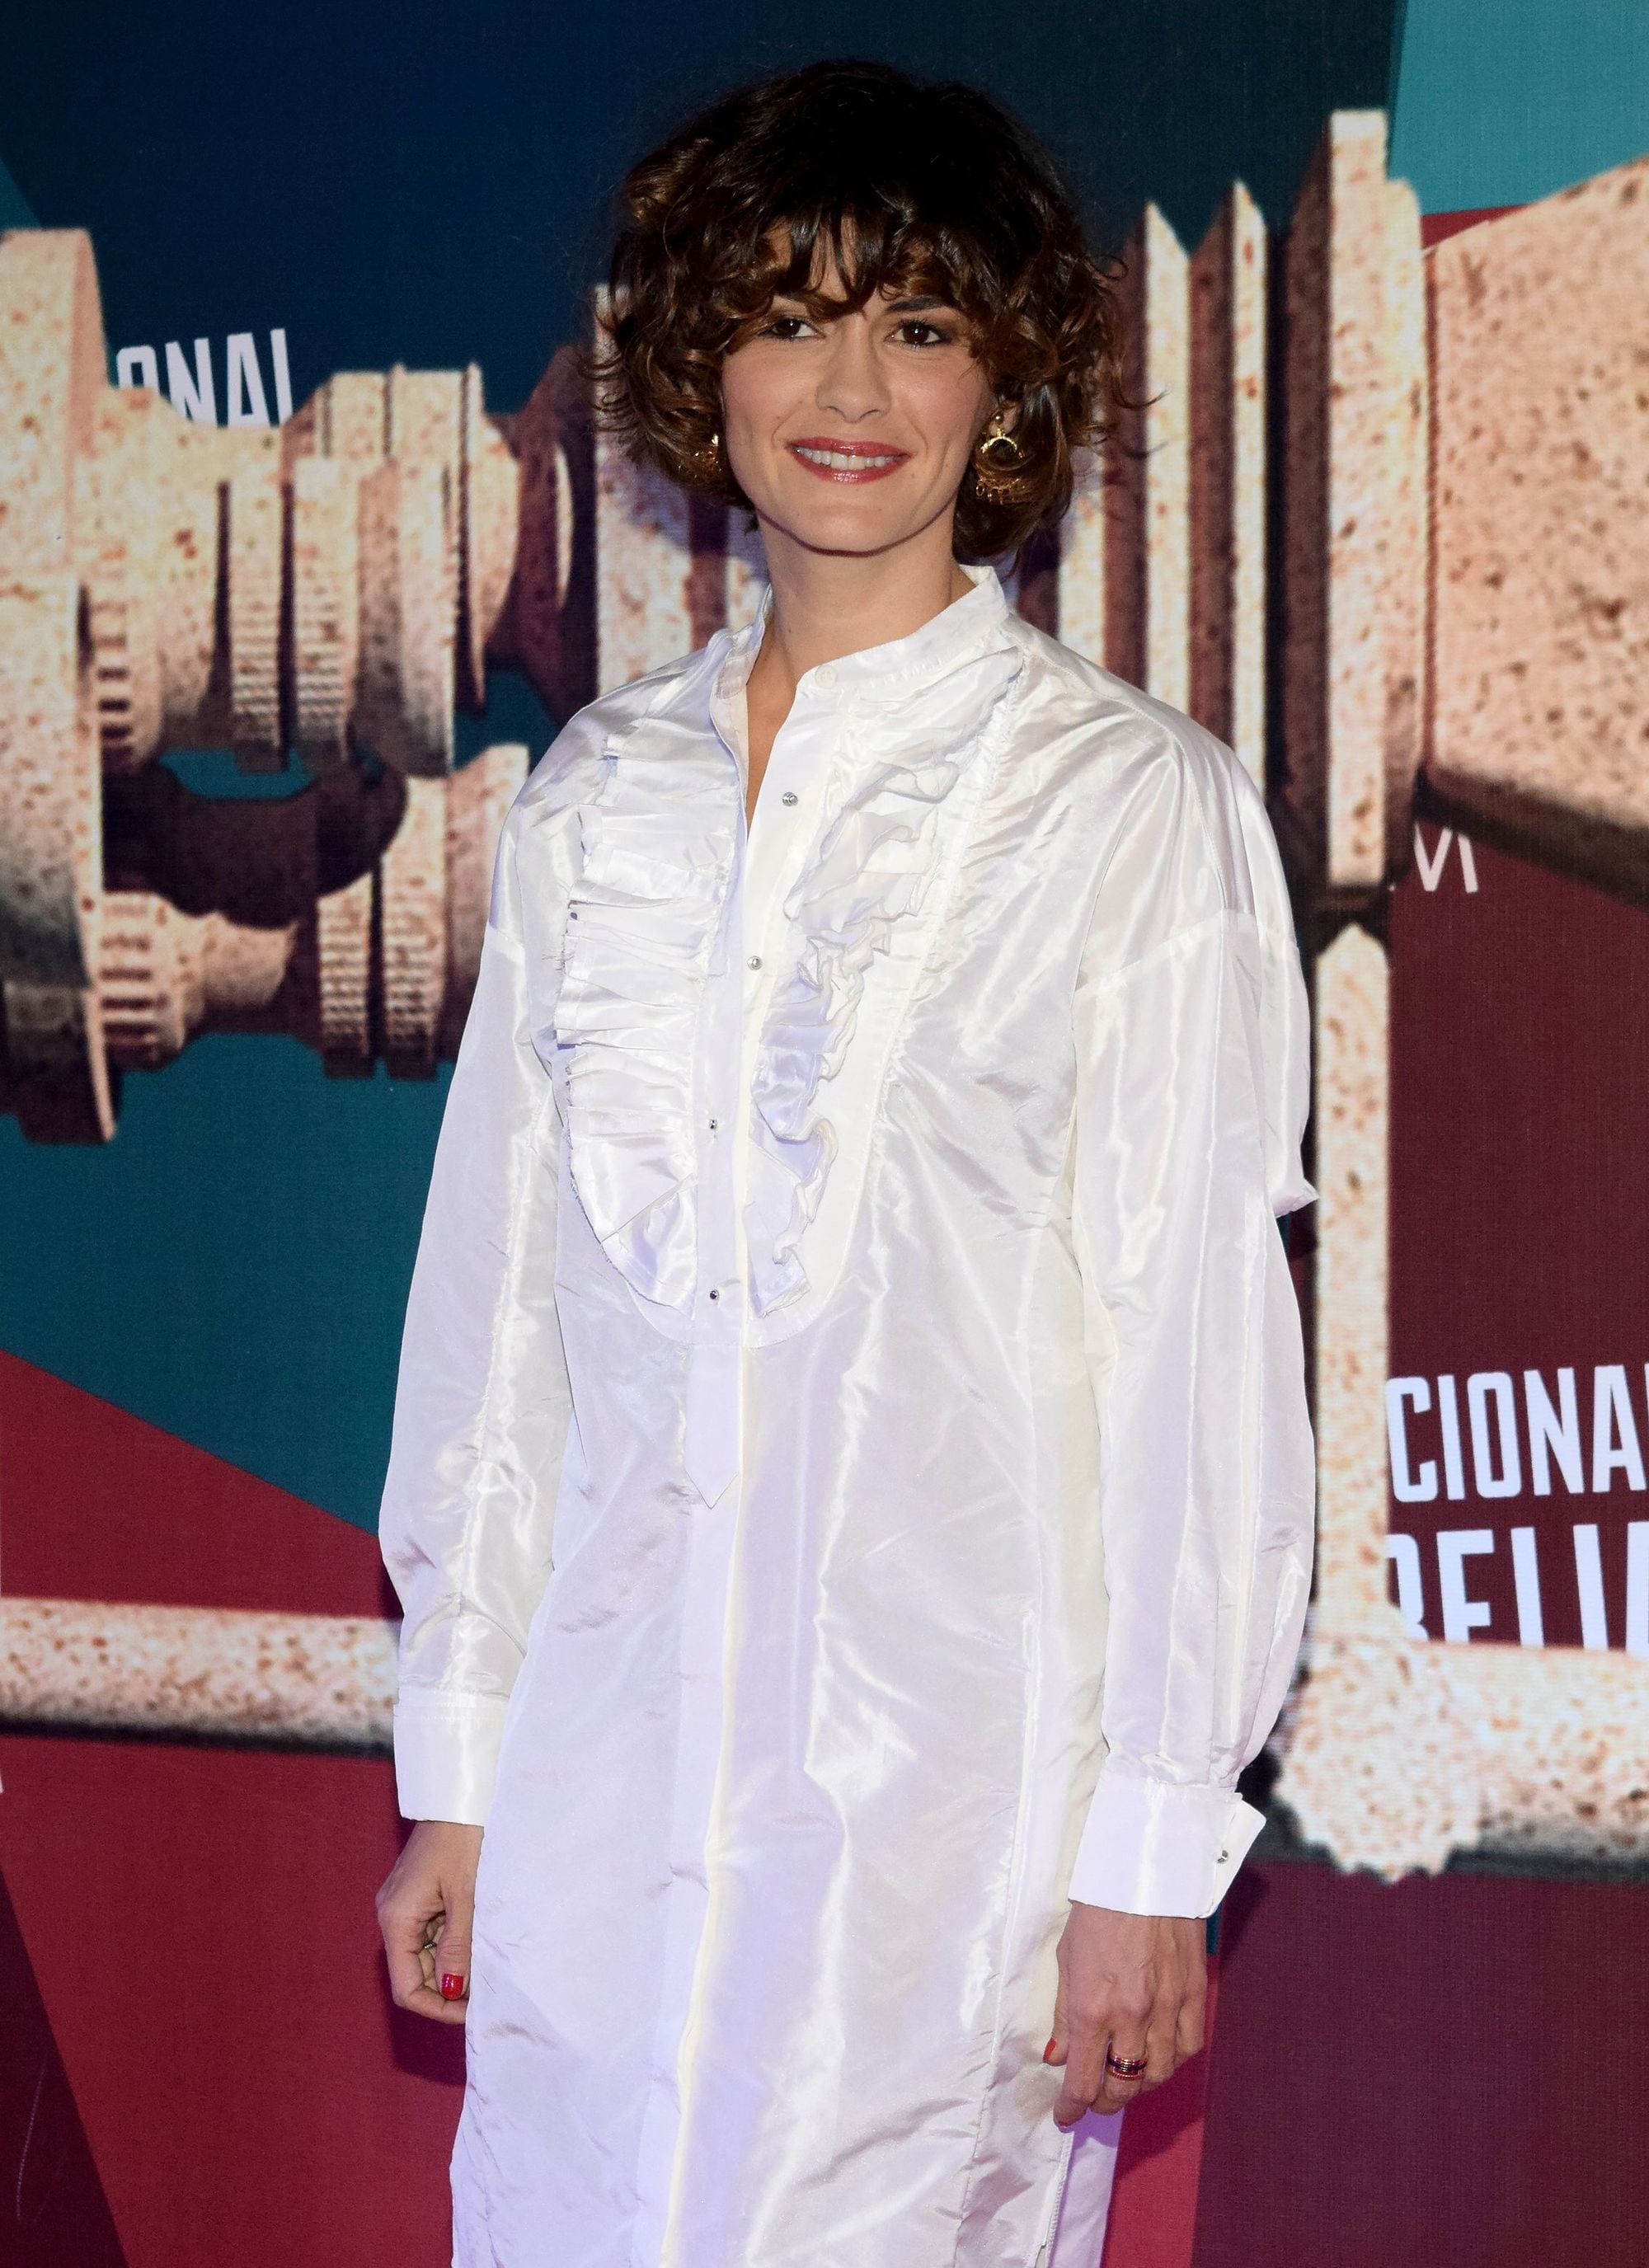 audrey tautou popular short shag hairstyle on curly brown bob-length hair wearing white oversized shirt dress